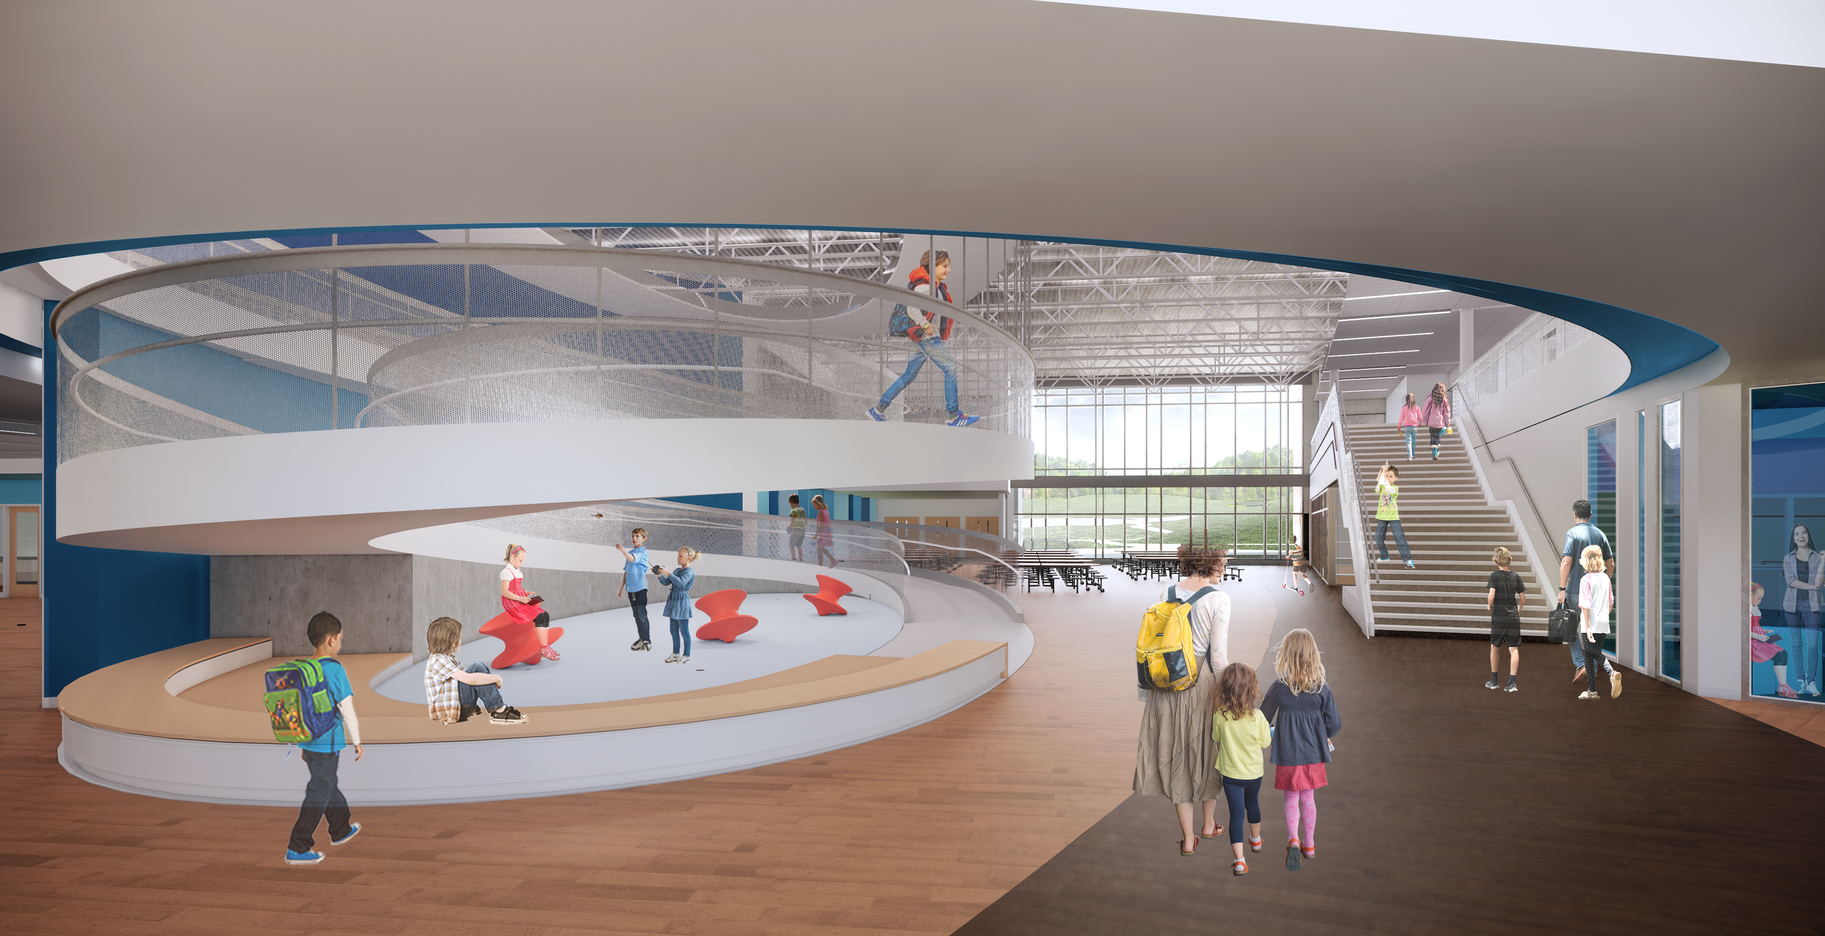 Rendering of a school lobby where a large parabolic ramp to the second floor is visible, with seating at the bottom